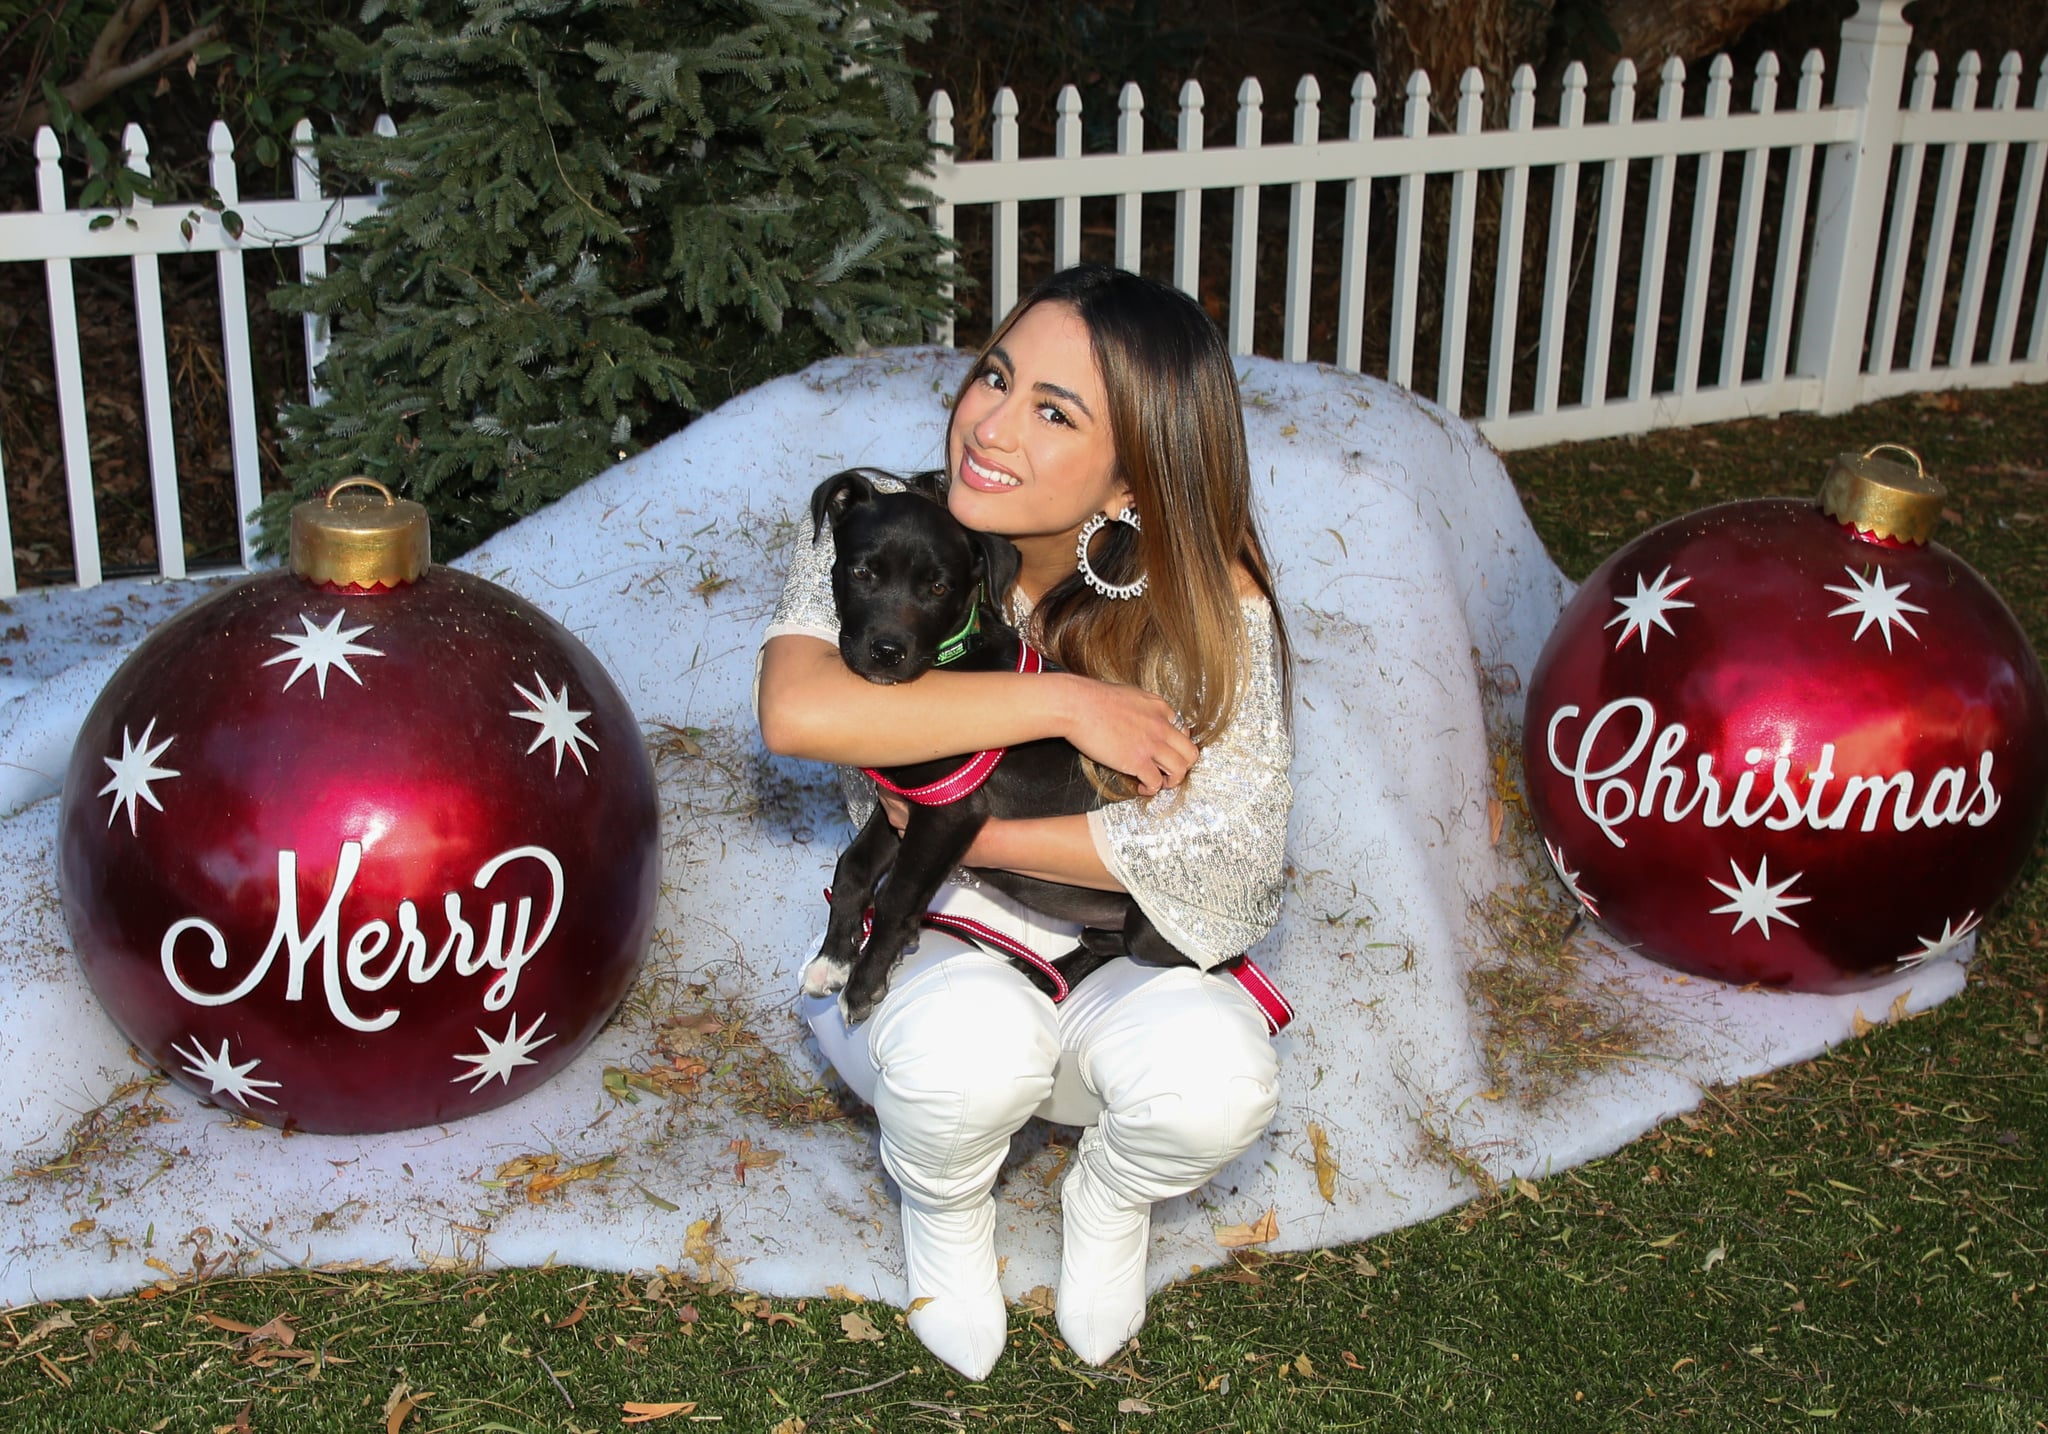 UNIVERSAL CITY, CALIFORNIA - DECEMBER 04: Singer Ally Brooke poses with a rescue dog on the set of Hallmark Channel's